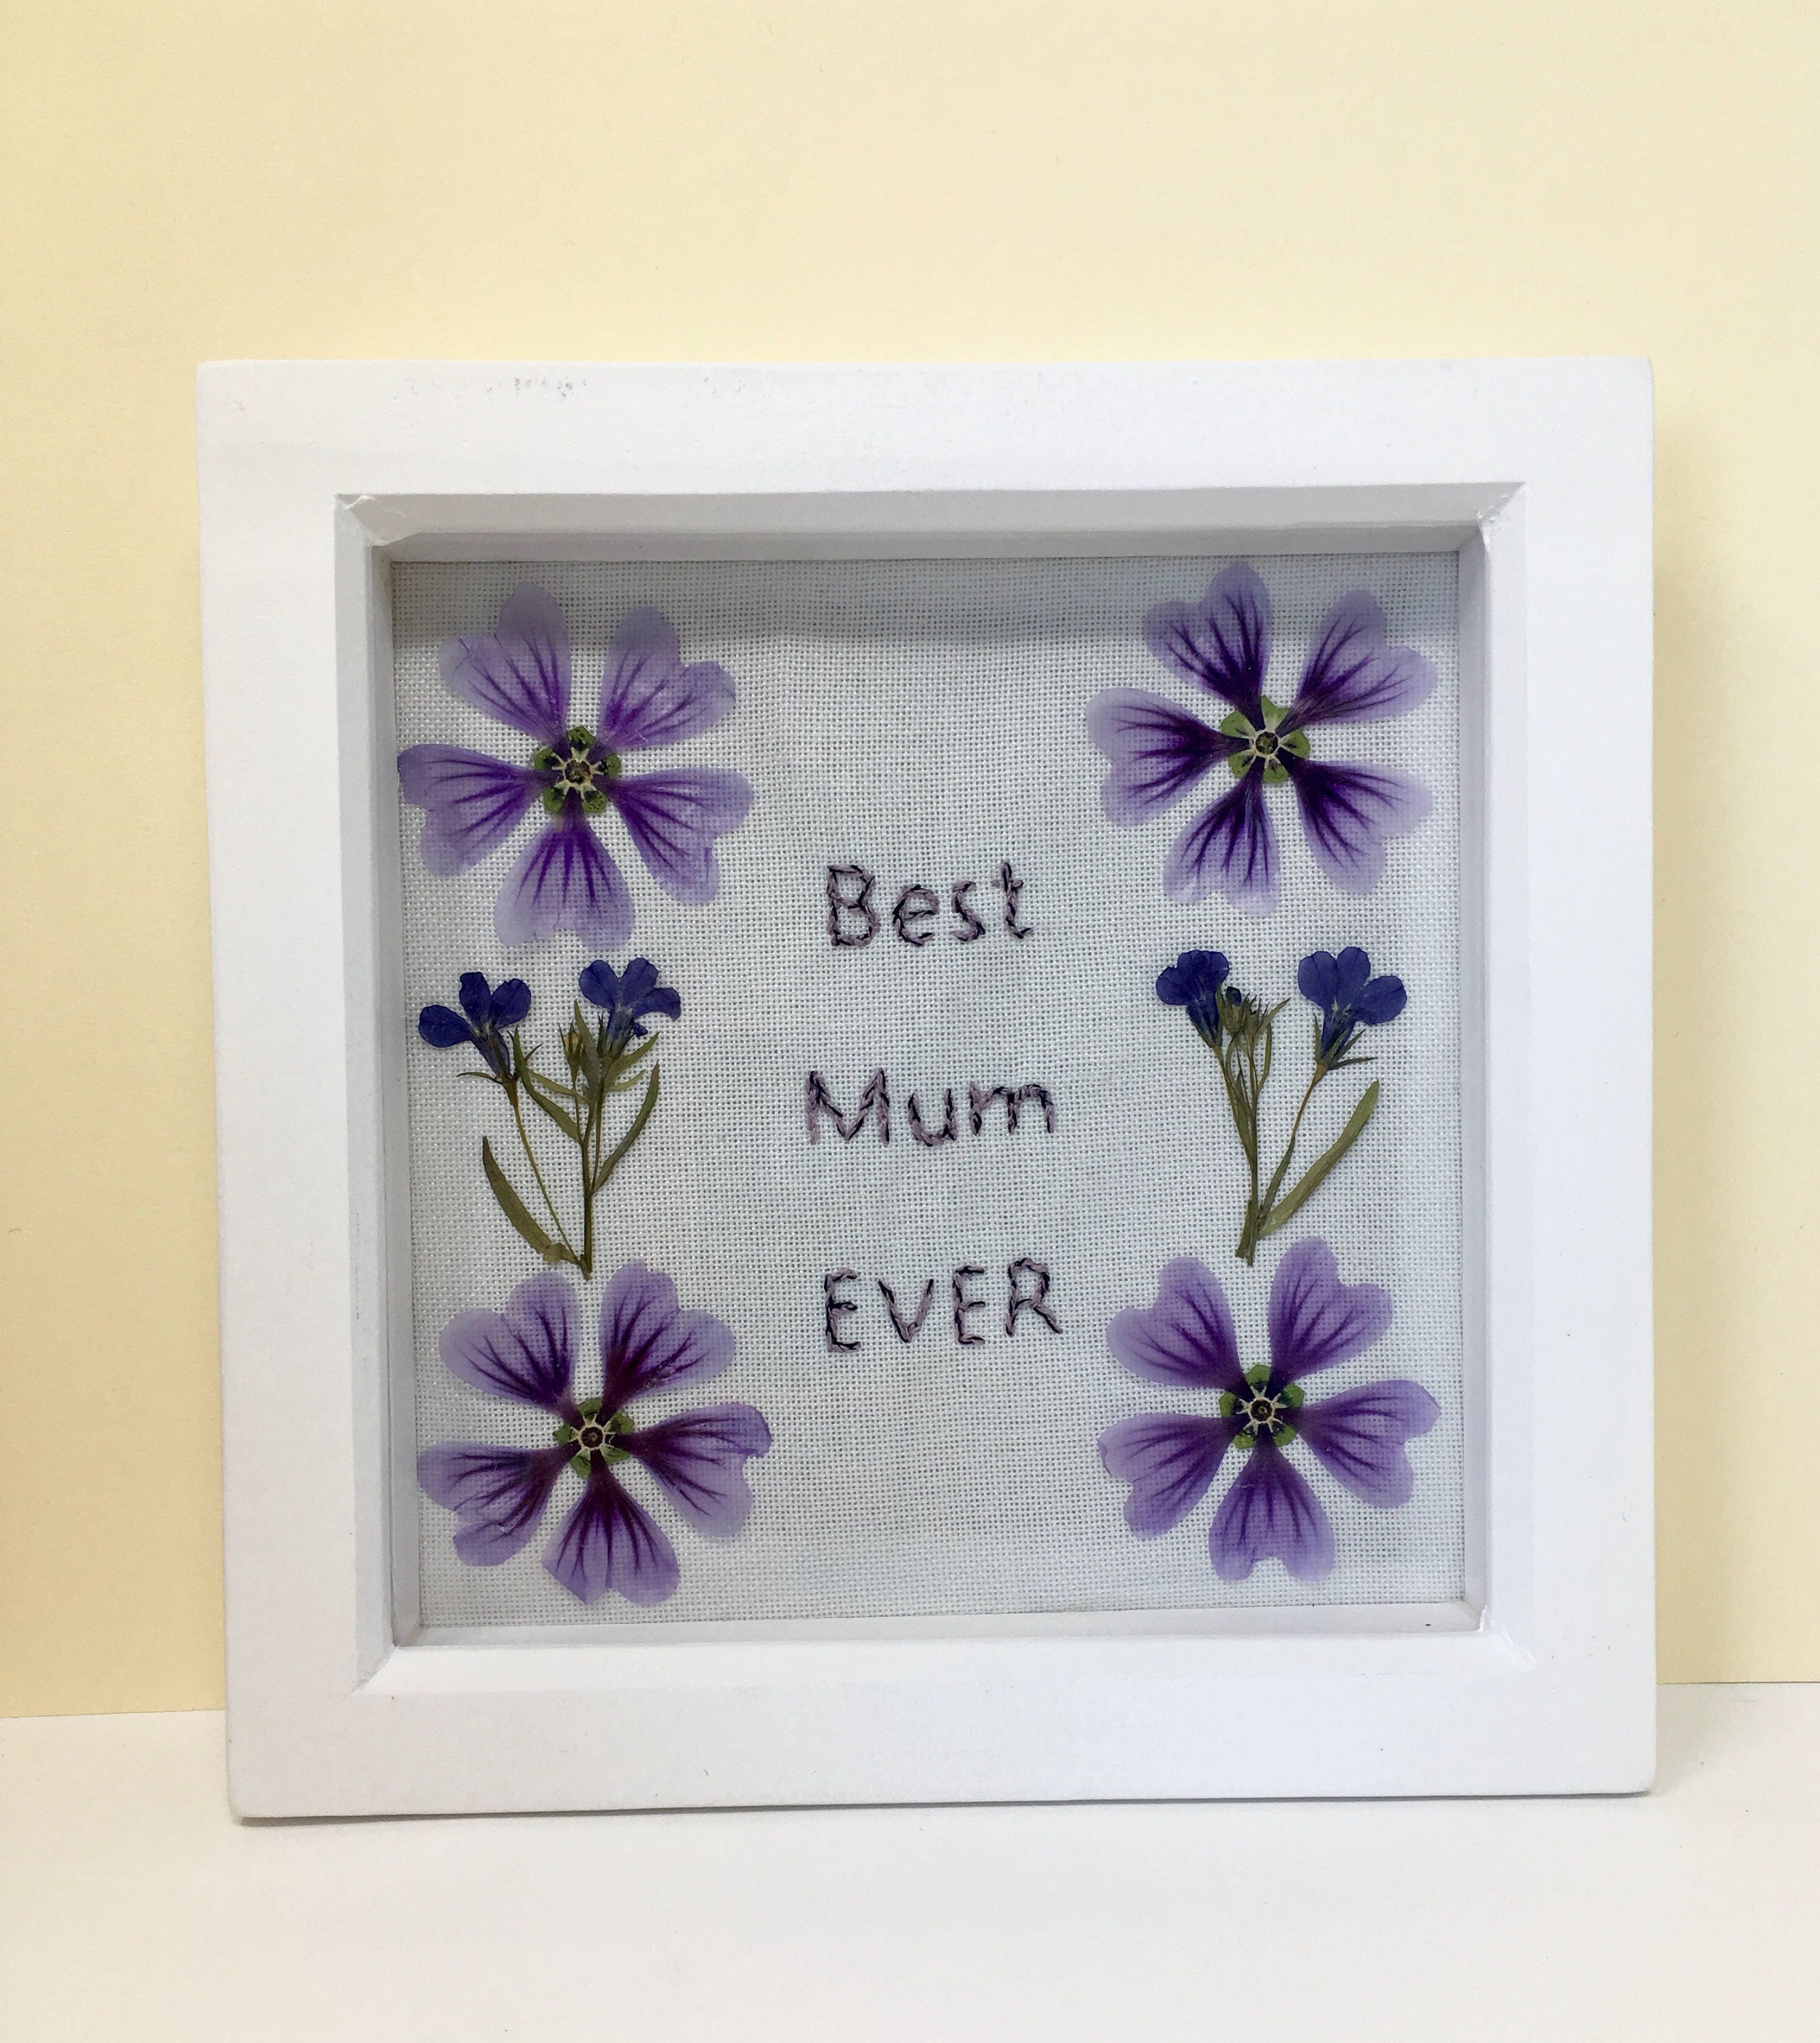 Image of Handmade Mothers Day Birthday gift for Mum Pressed flowers Flower art Box frame Wall dcor Dried flowers Gift for Mum